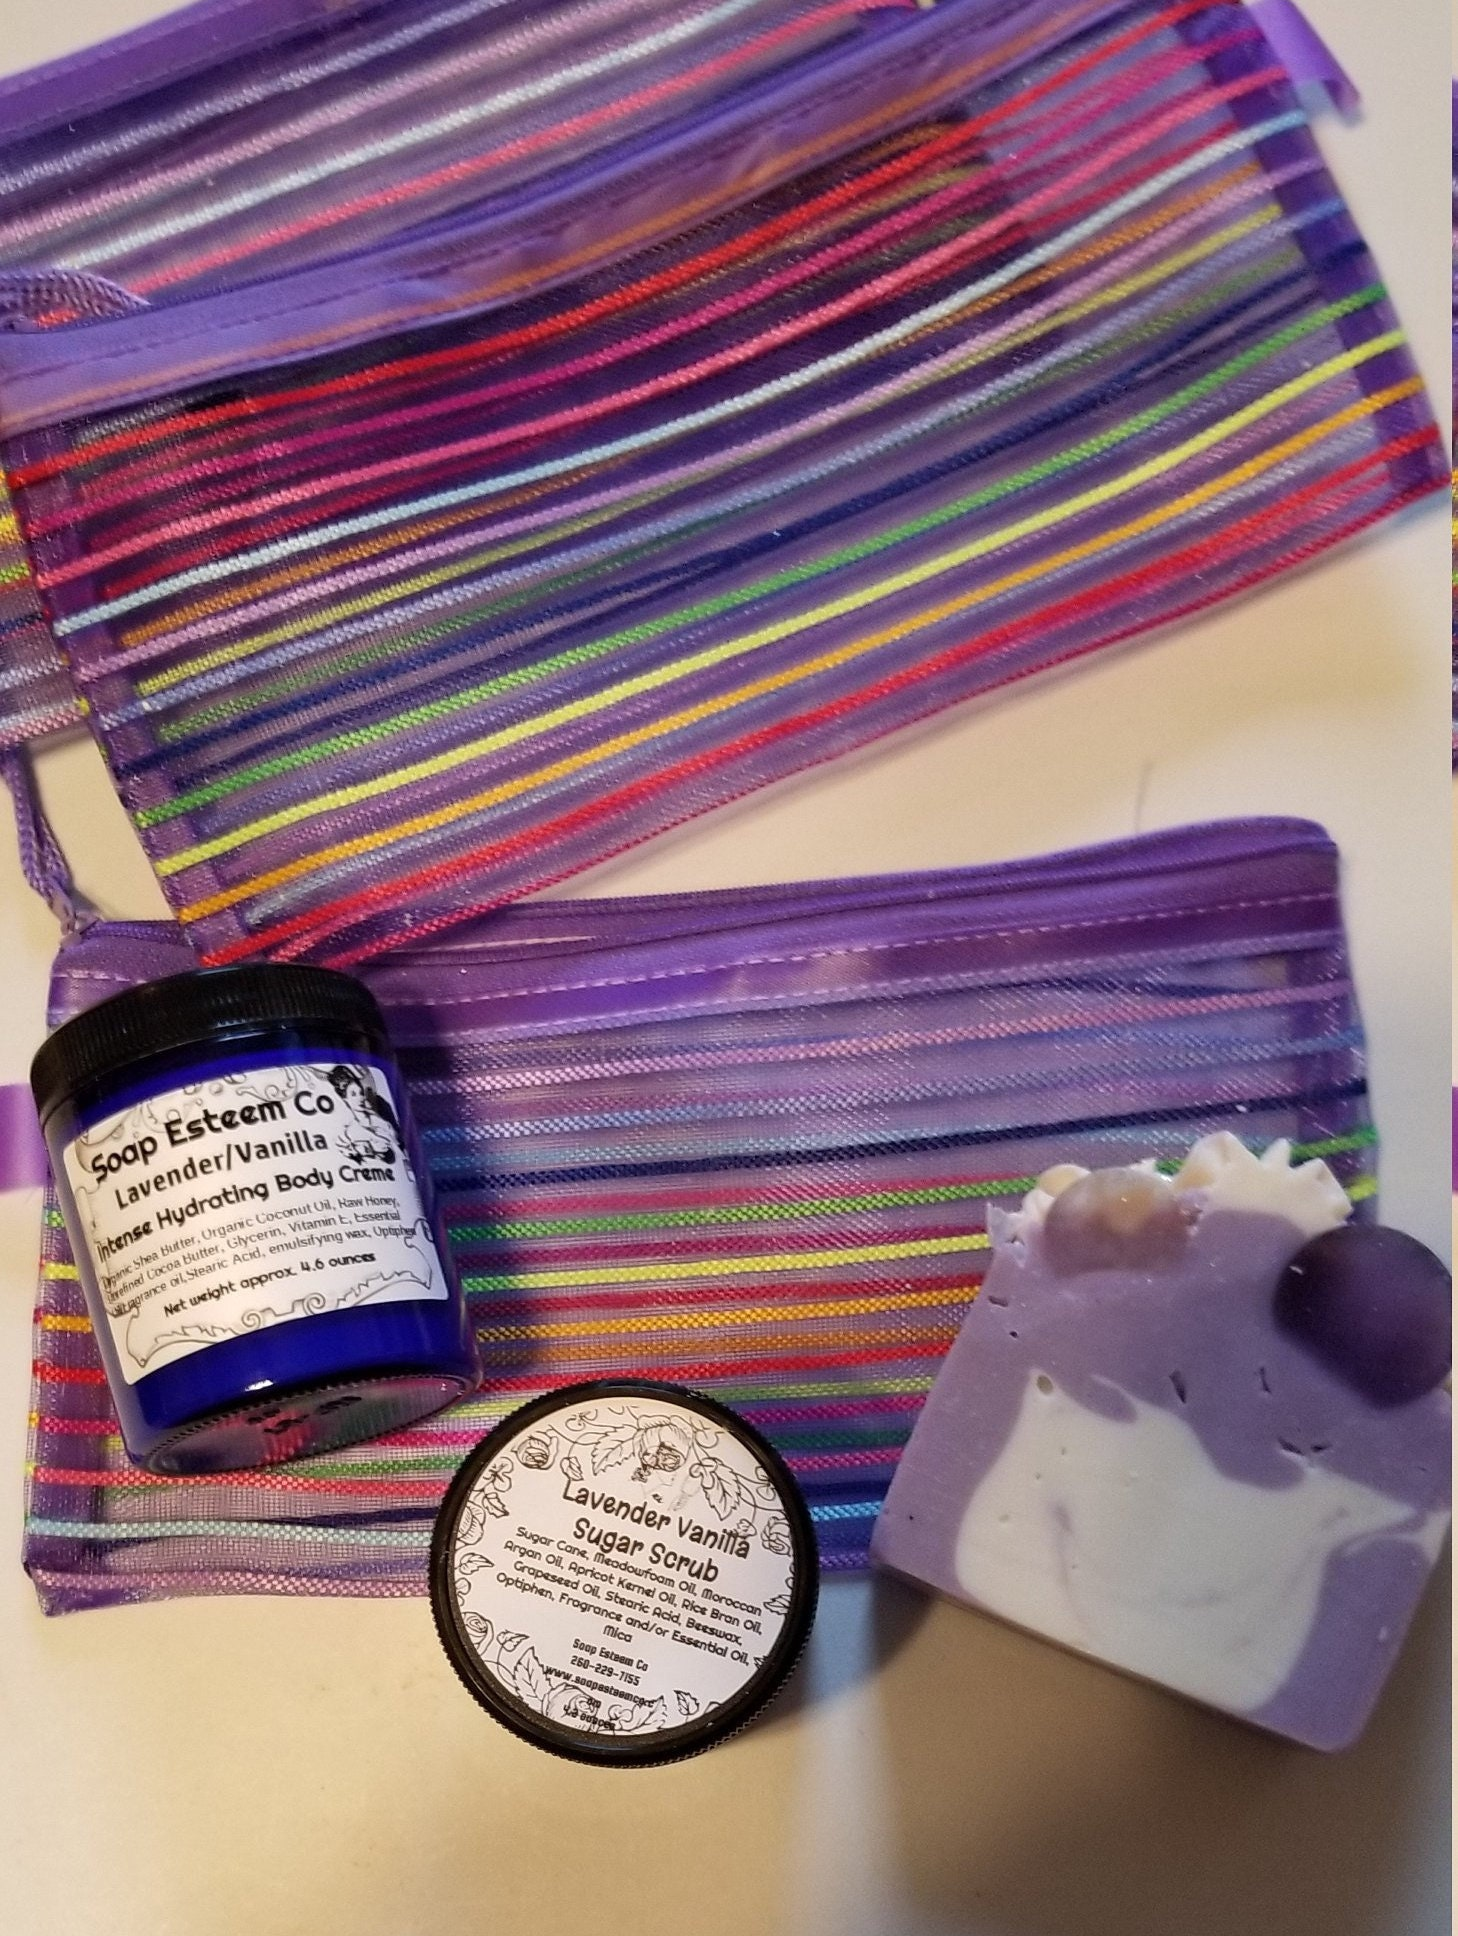 Spa gift Sets, Relaxation Skin Care gift set, Party favors in a